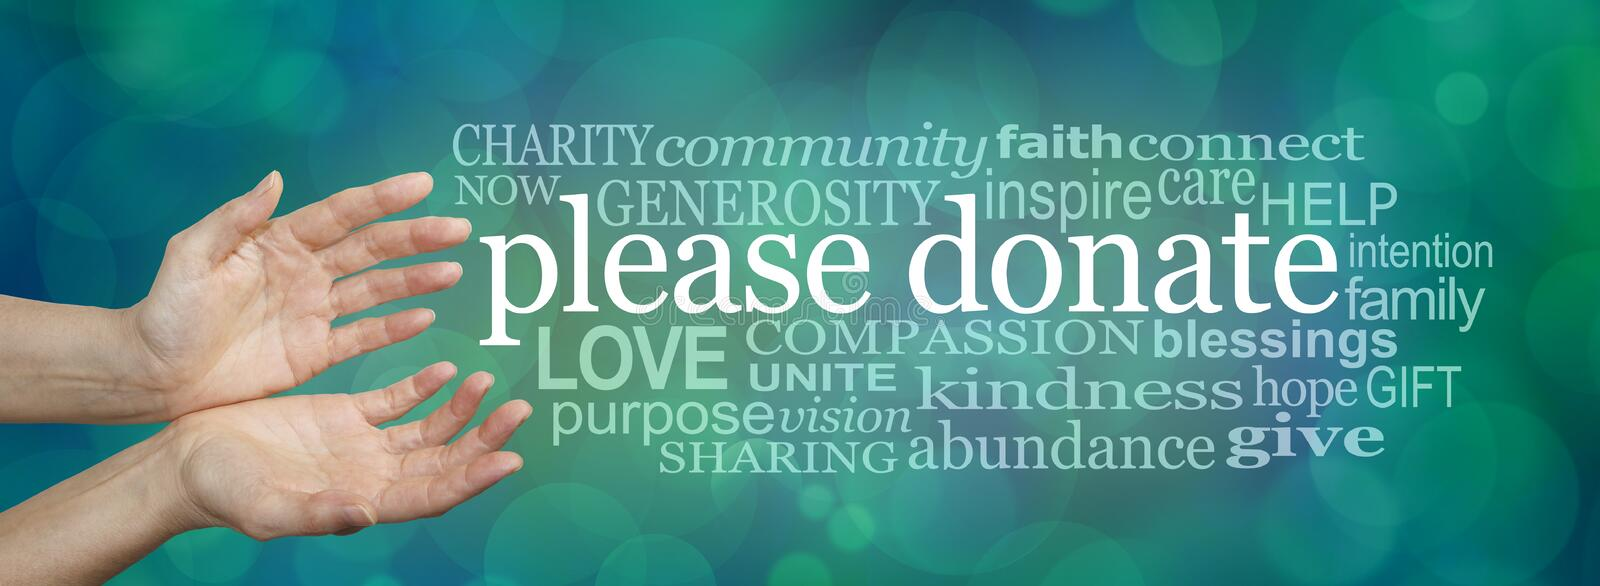 Please donate fund raising word cloud banner. Wide banner with a woman's hands in an open cupped needy gesture with a word cloud on the right surrounding the royalty free stock images